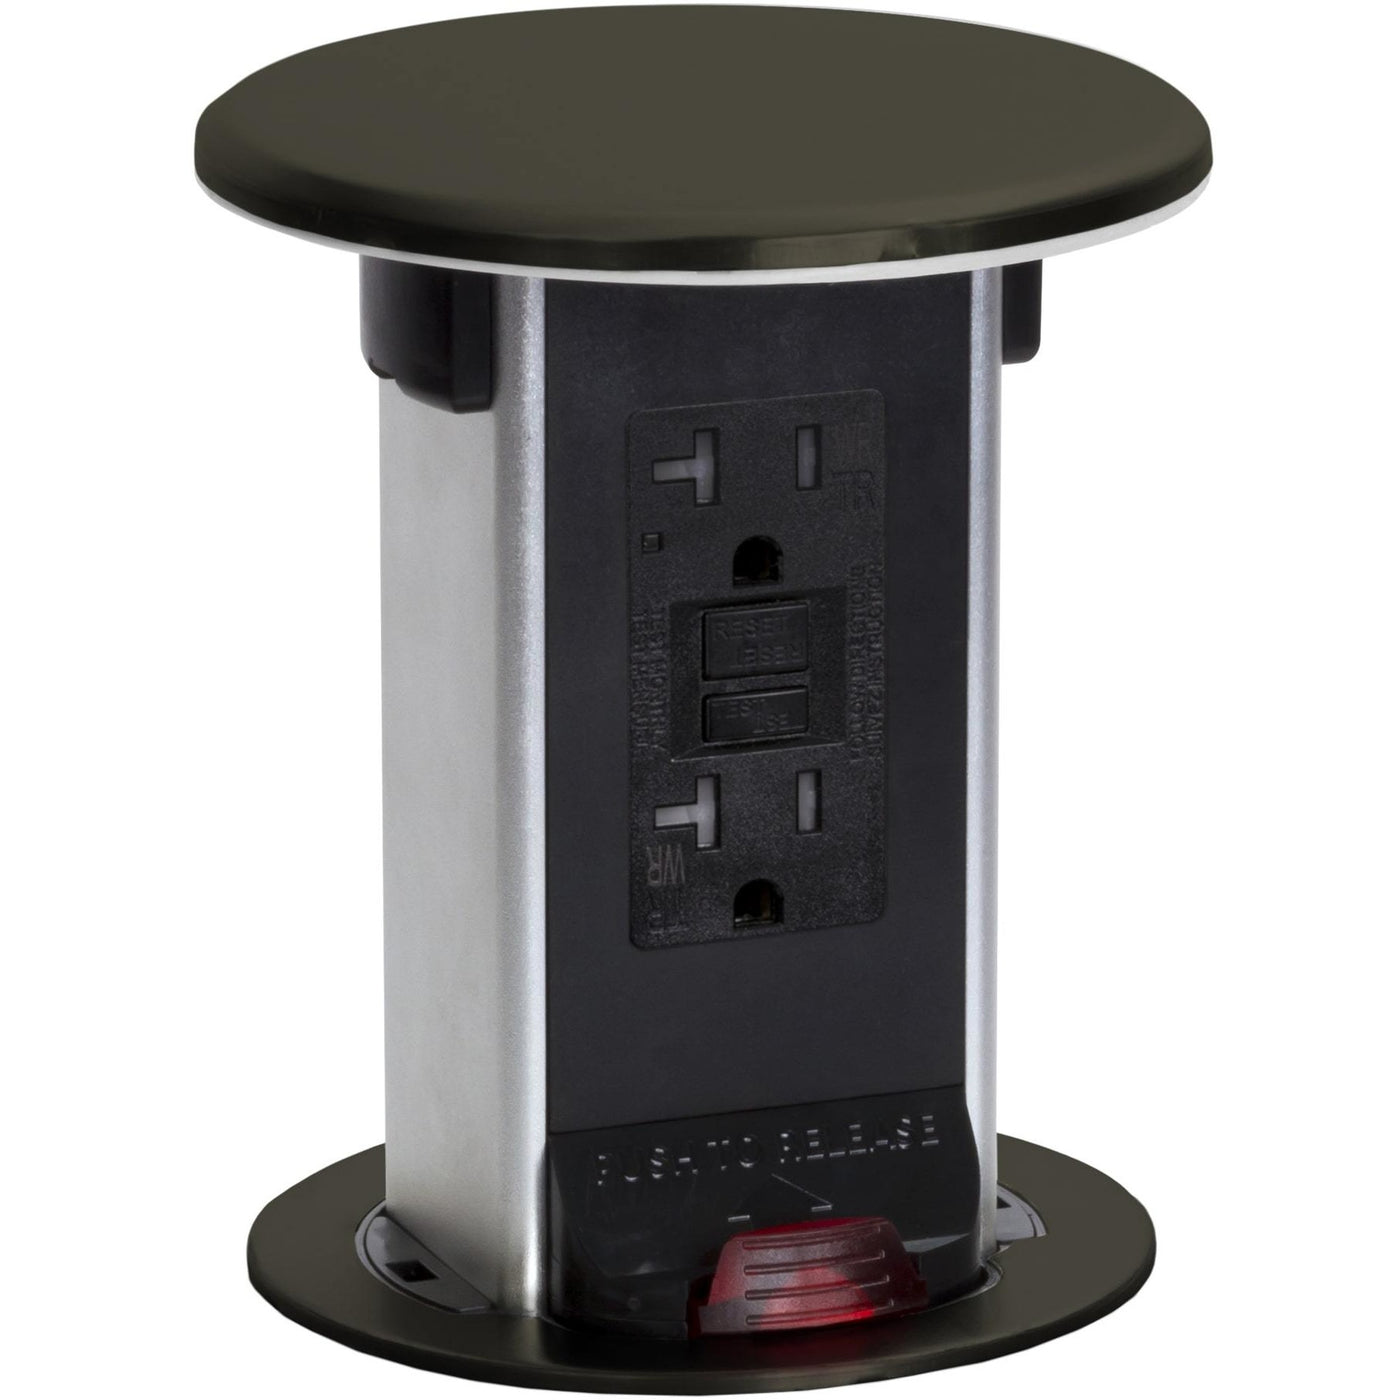 Lew Electric Pur20 Db Kitchen Waterproof Pop Up 20a Gfci Dark How Gfcis Work Content From Electrical Construction Bronze